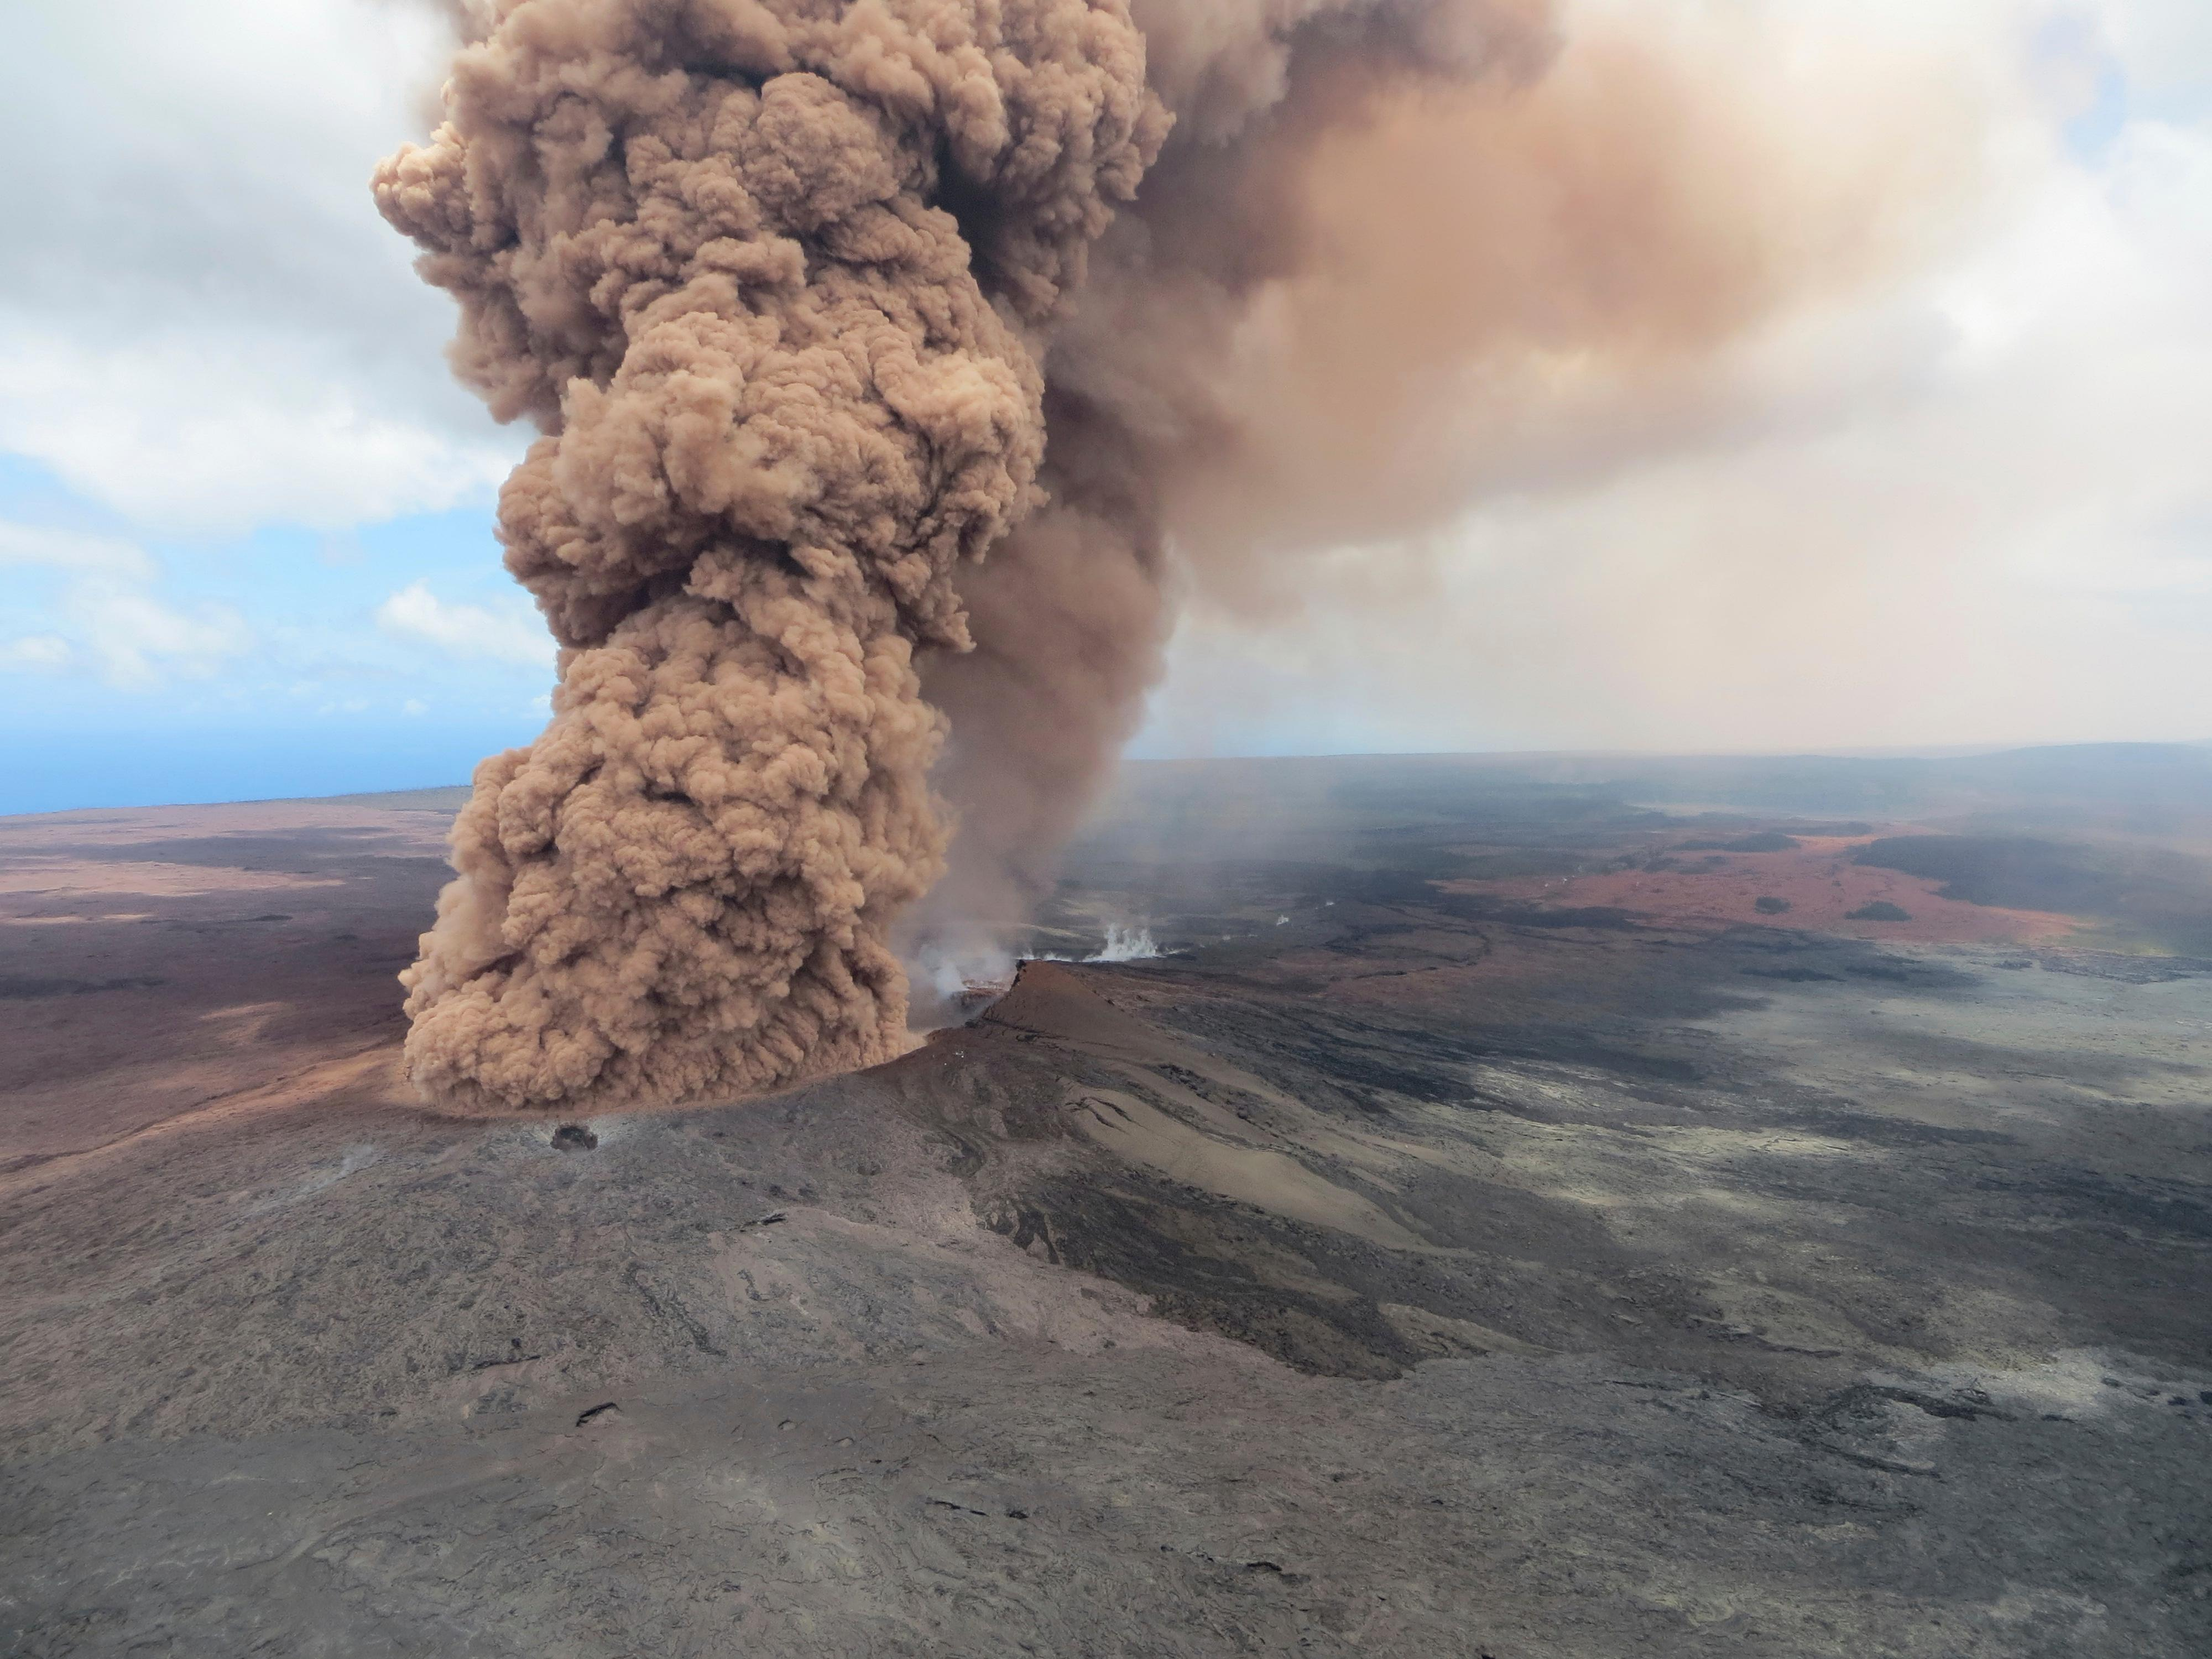 This Friday, May 4, 2018, aerial image released by the U.S. Geological Survey, at 12:46 p.m. HST, a column of robust, reddish-brown ash plume occurred after a magnitude 6.9 South Flank of K?lauea earthquake shook the Big Island of Hawaii, Hawaii. The Kilauea volcano sent more lava into Hawaii communities Friday, a day after forcing more than 1,500 people to flee from their mountainside homes, and authorities detected high levels of sulfur gas that could threaten the elderly and people with breathing problems. (U.S. Geological Survey via AP)